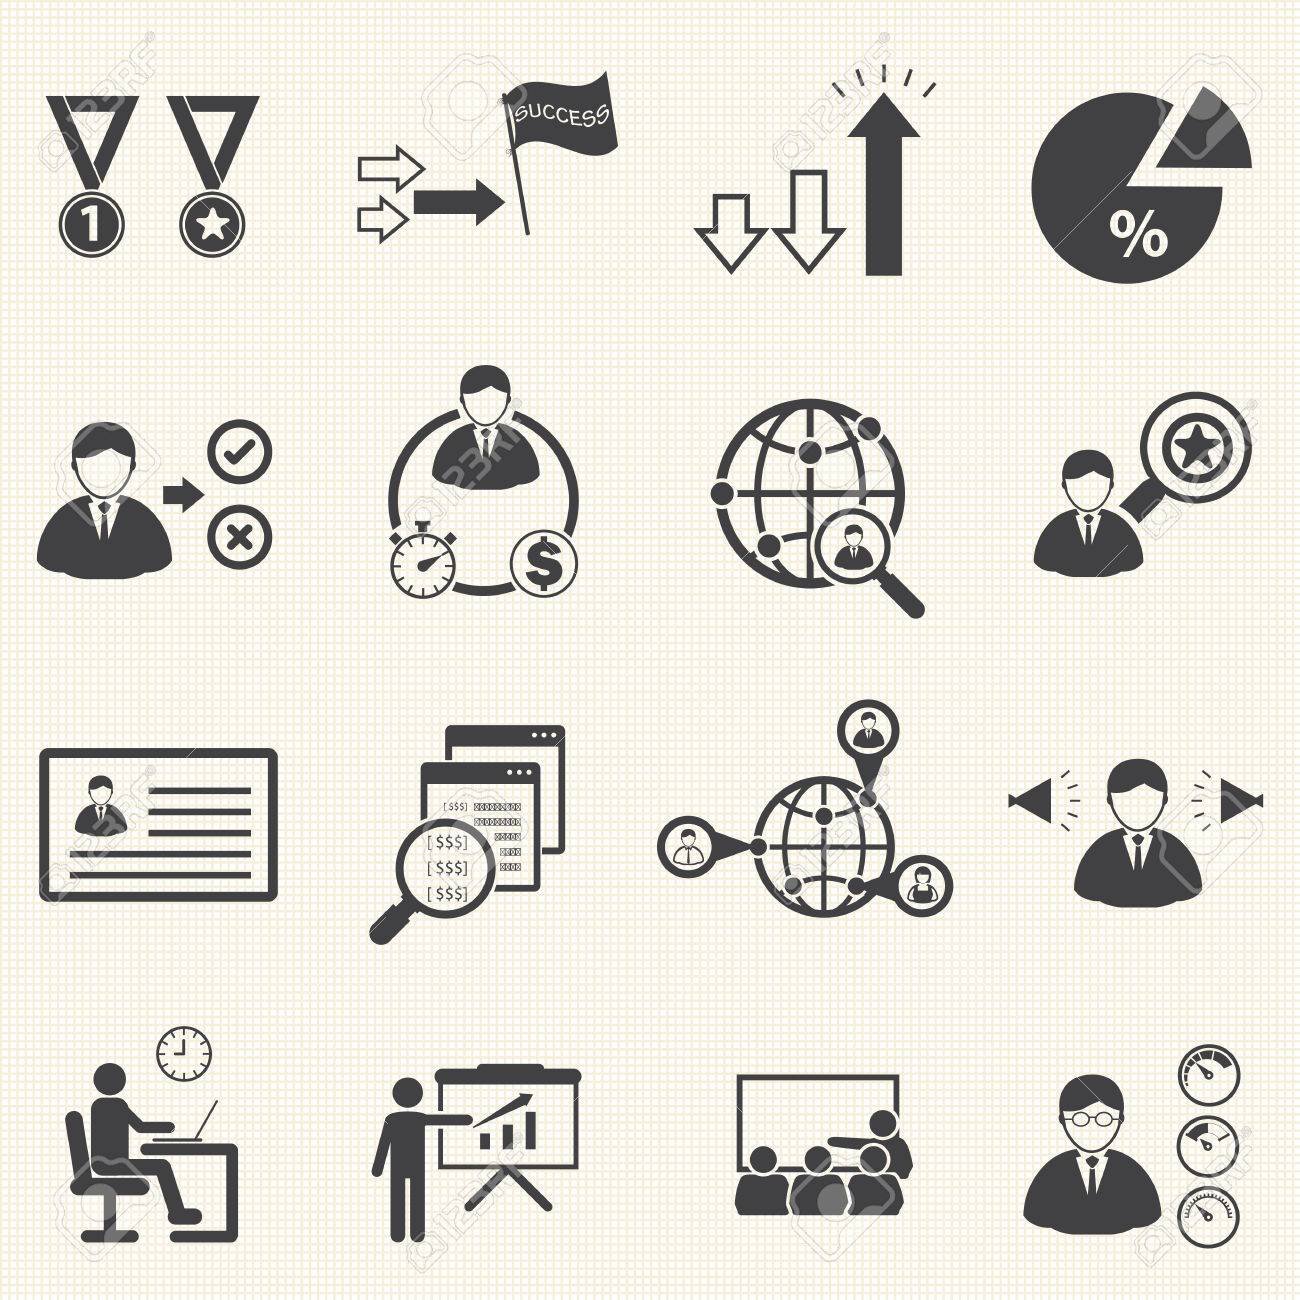 human resource management and consulting business icons set, vector set - 23865911